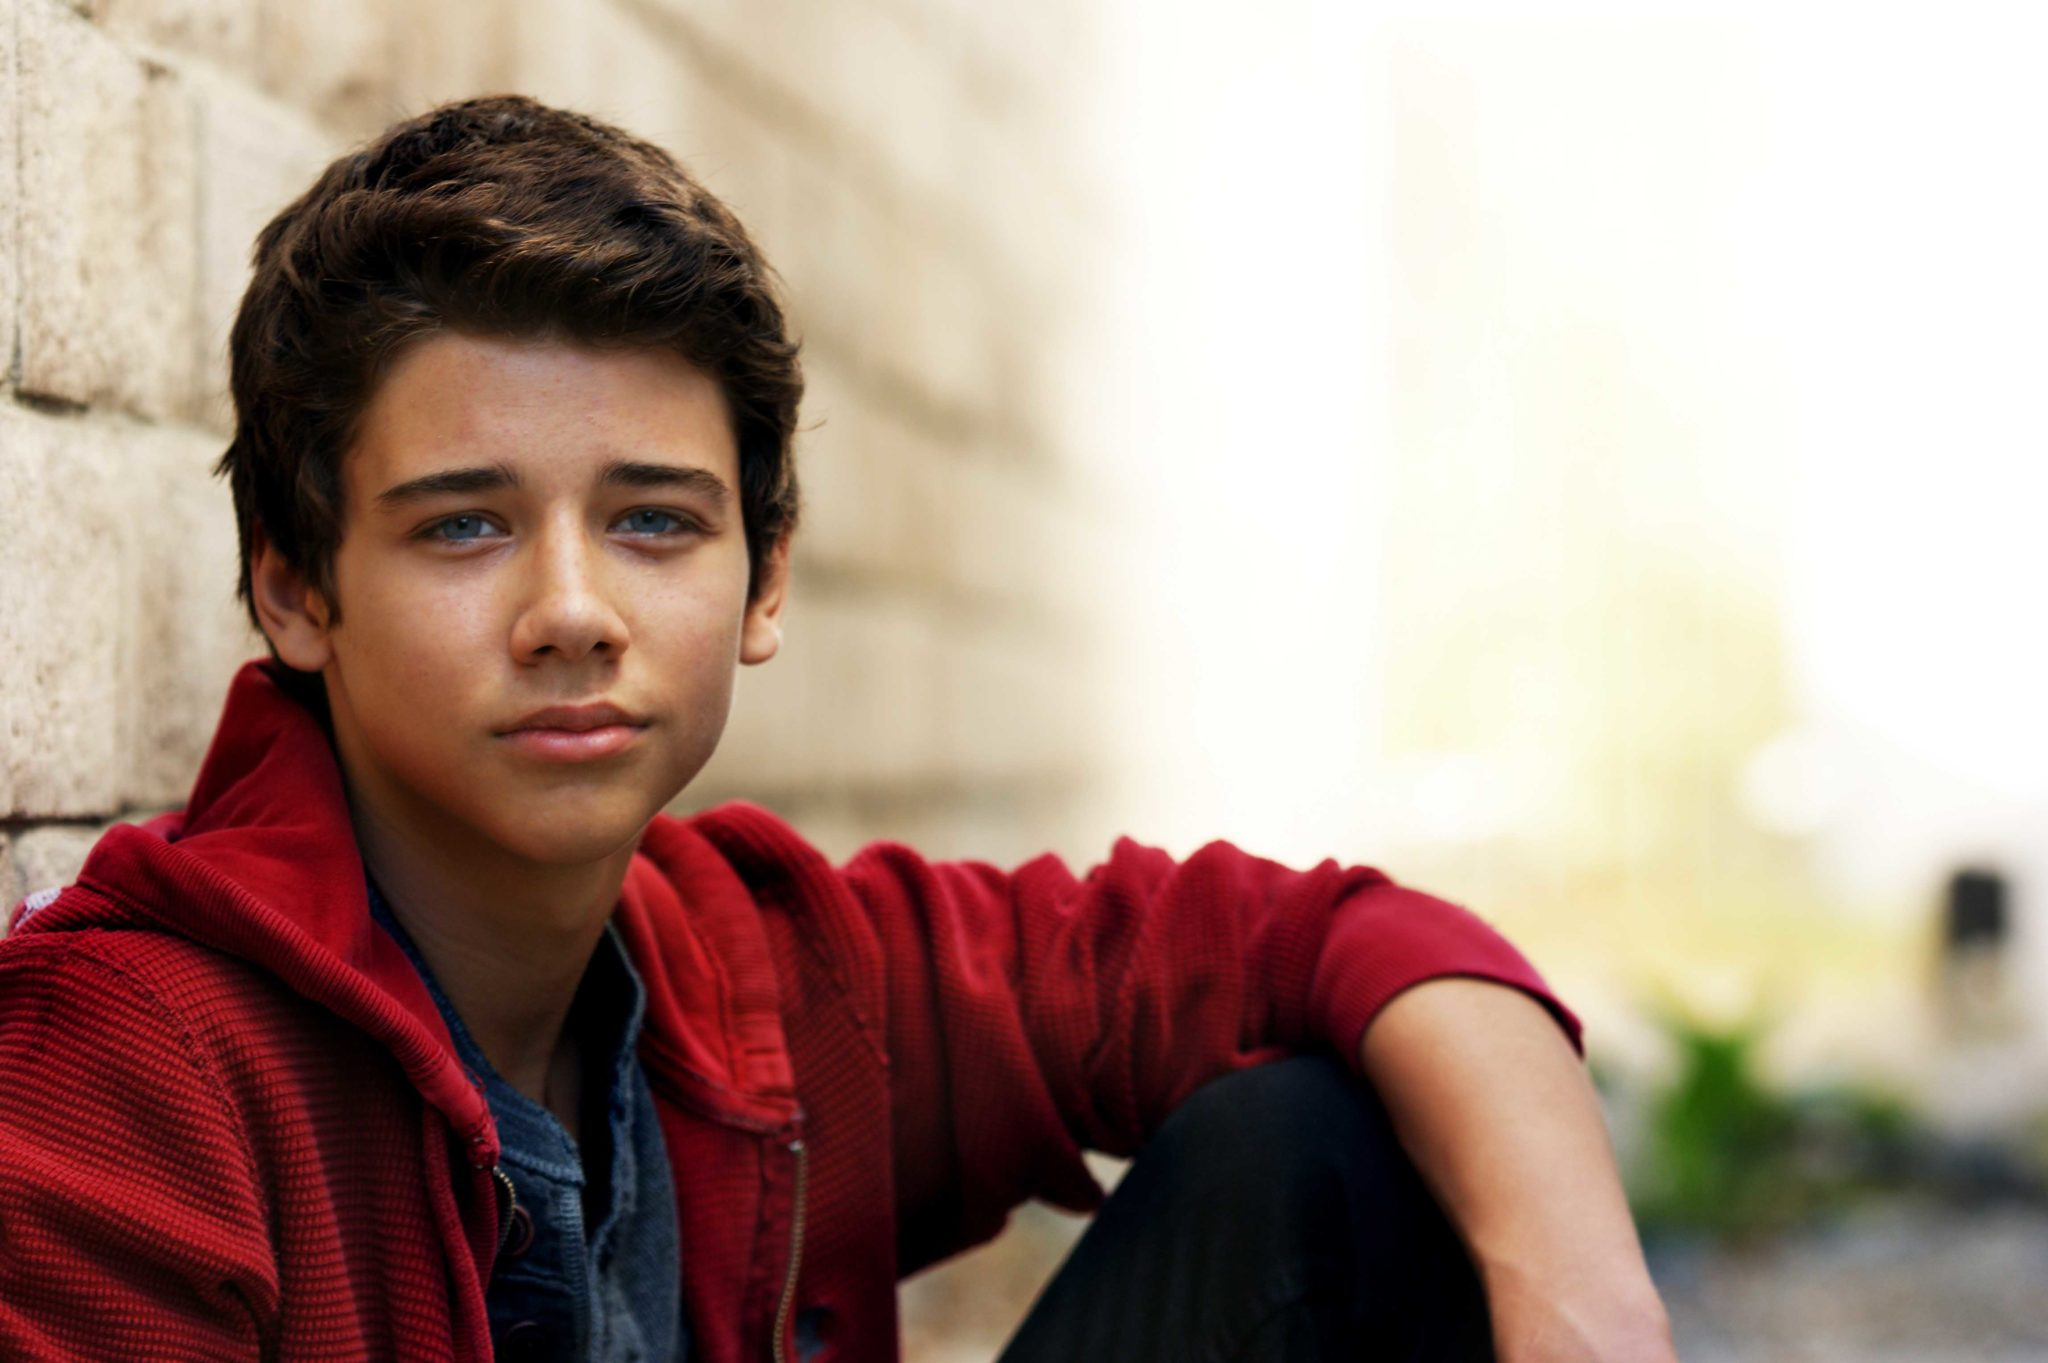 13 reasons whys uriah shelton slapped with restraining order sam smith pictured kissing 13 reasons why actor brandon flynn altavistaventures Image collections